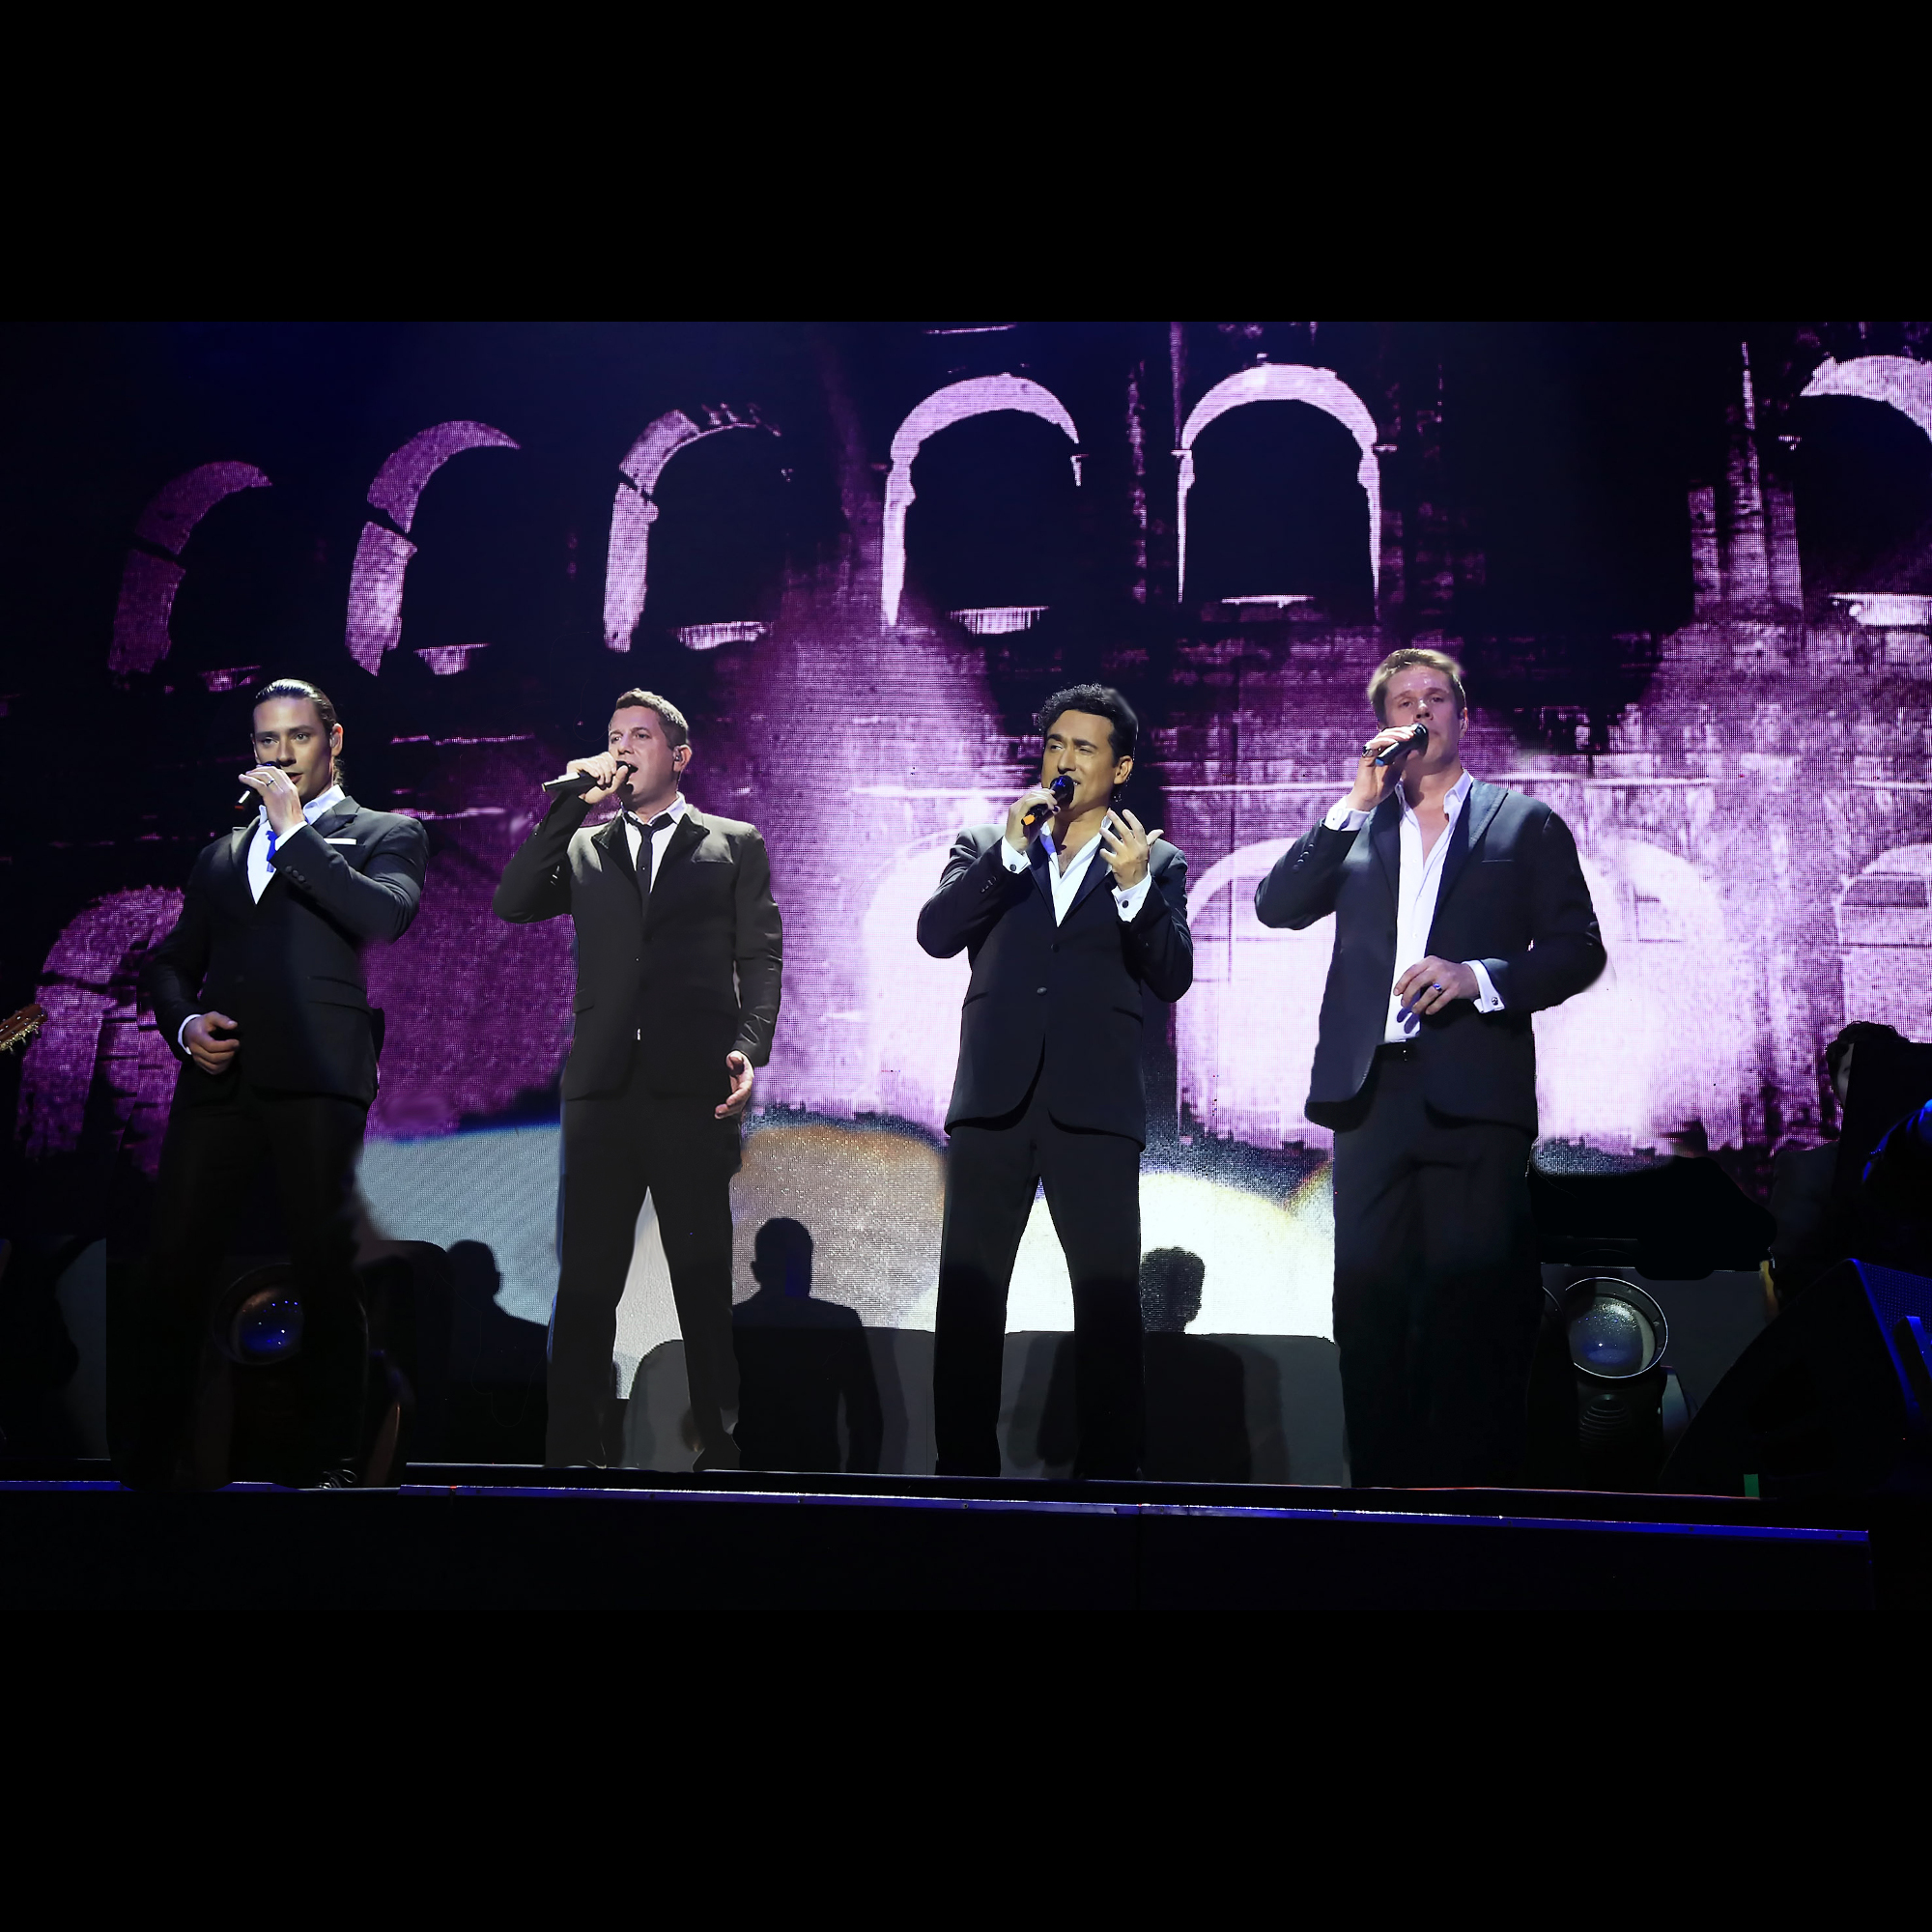 Buy il divo tickets il divo tour details il divo reviews - Il divo website ...